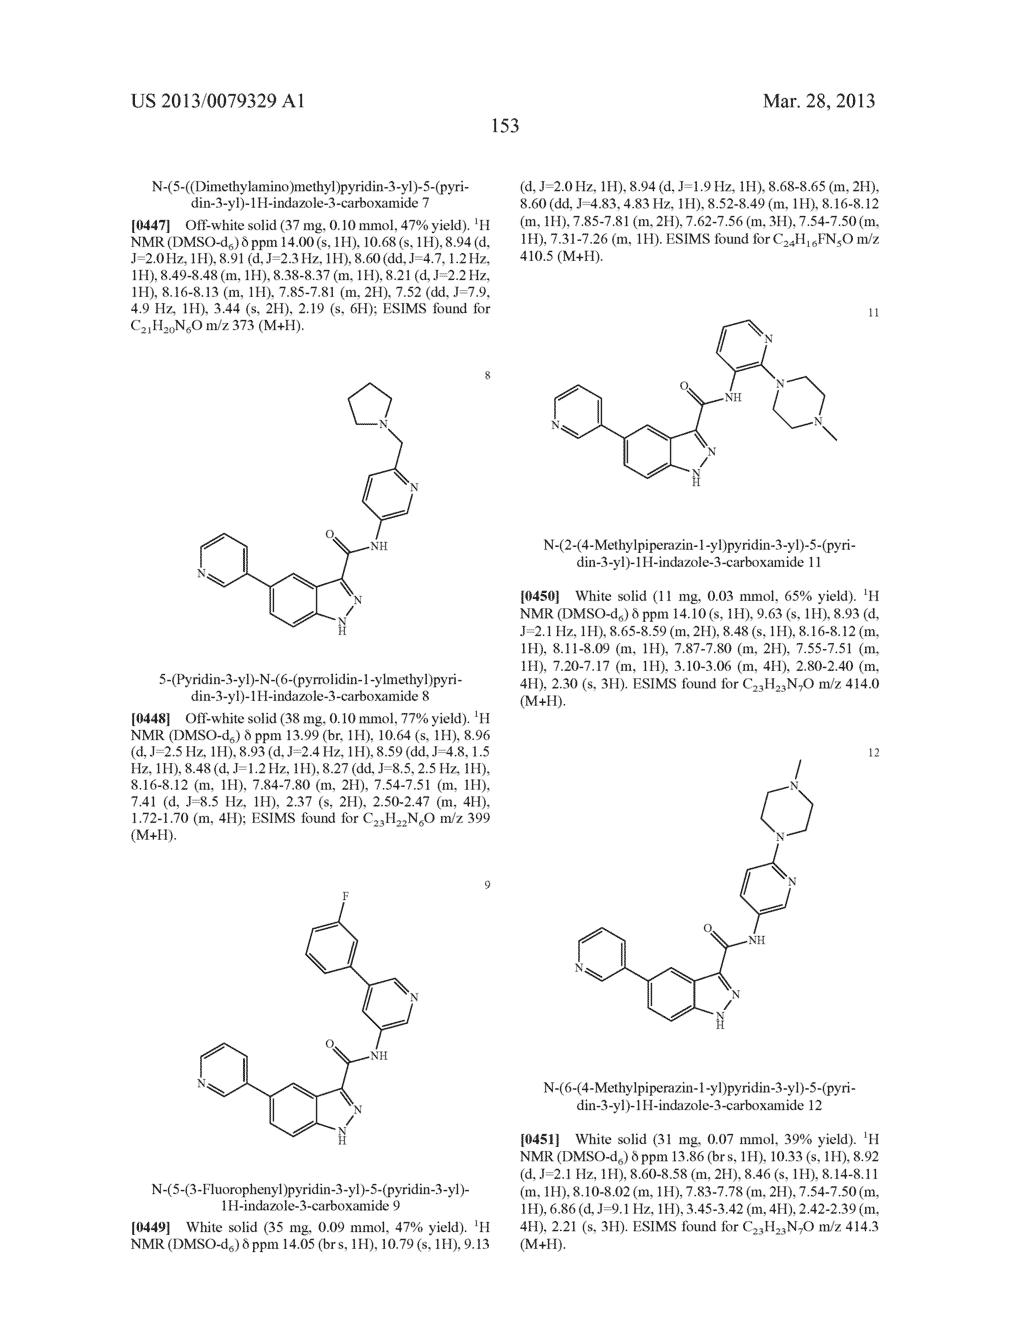 INDAZOLE-3-CARBOXAMIDES AND THEIR USE AS WNT/Beta-CATENIN SIGNALING     PATHWAY INHIBITORS - diagram, schematic, and image 154